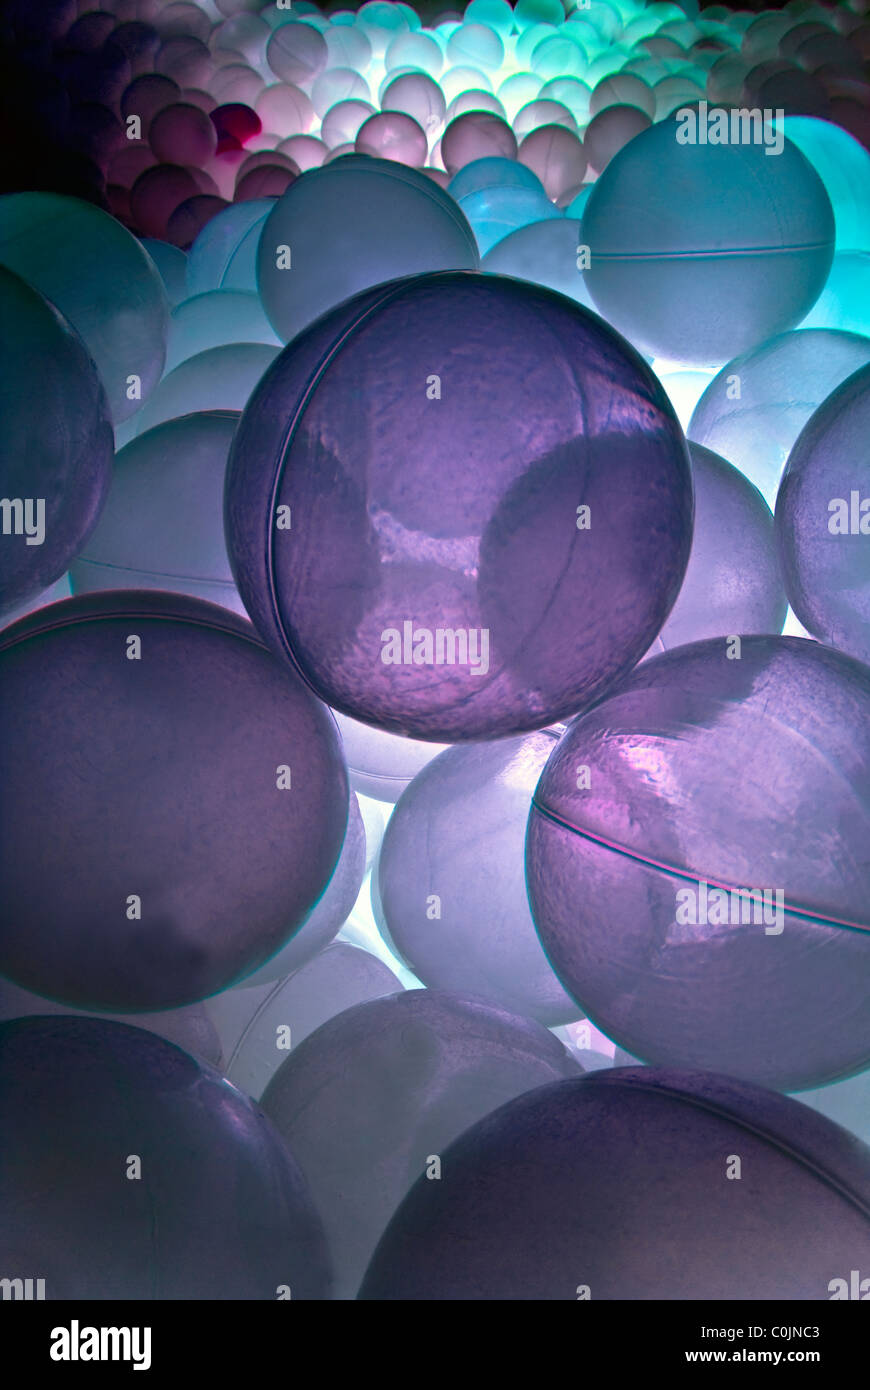 Ball pool with purple light in the light sensory room. Stock Photo